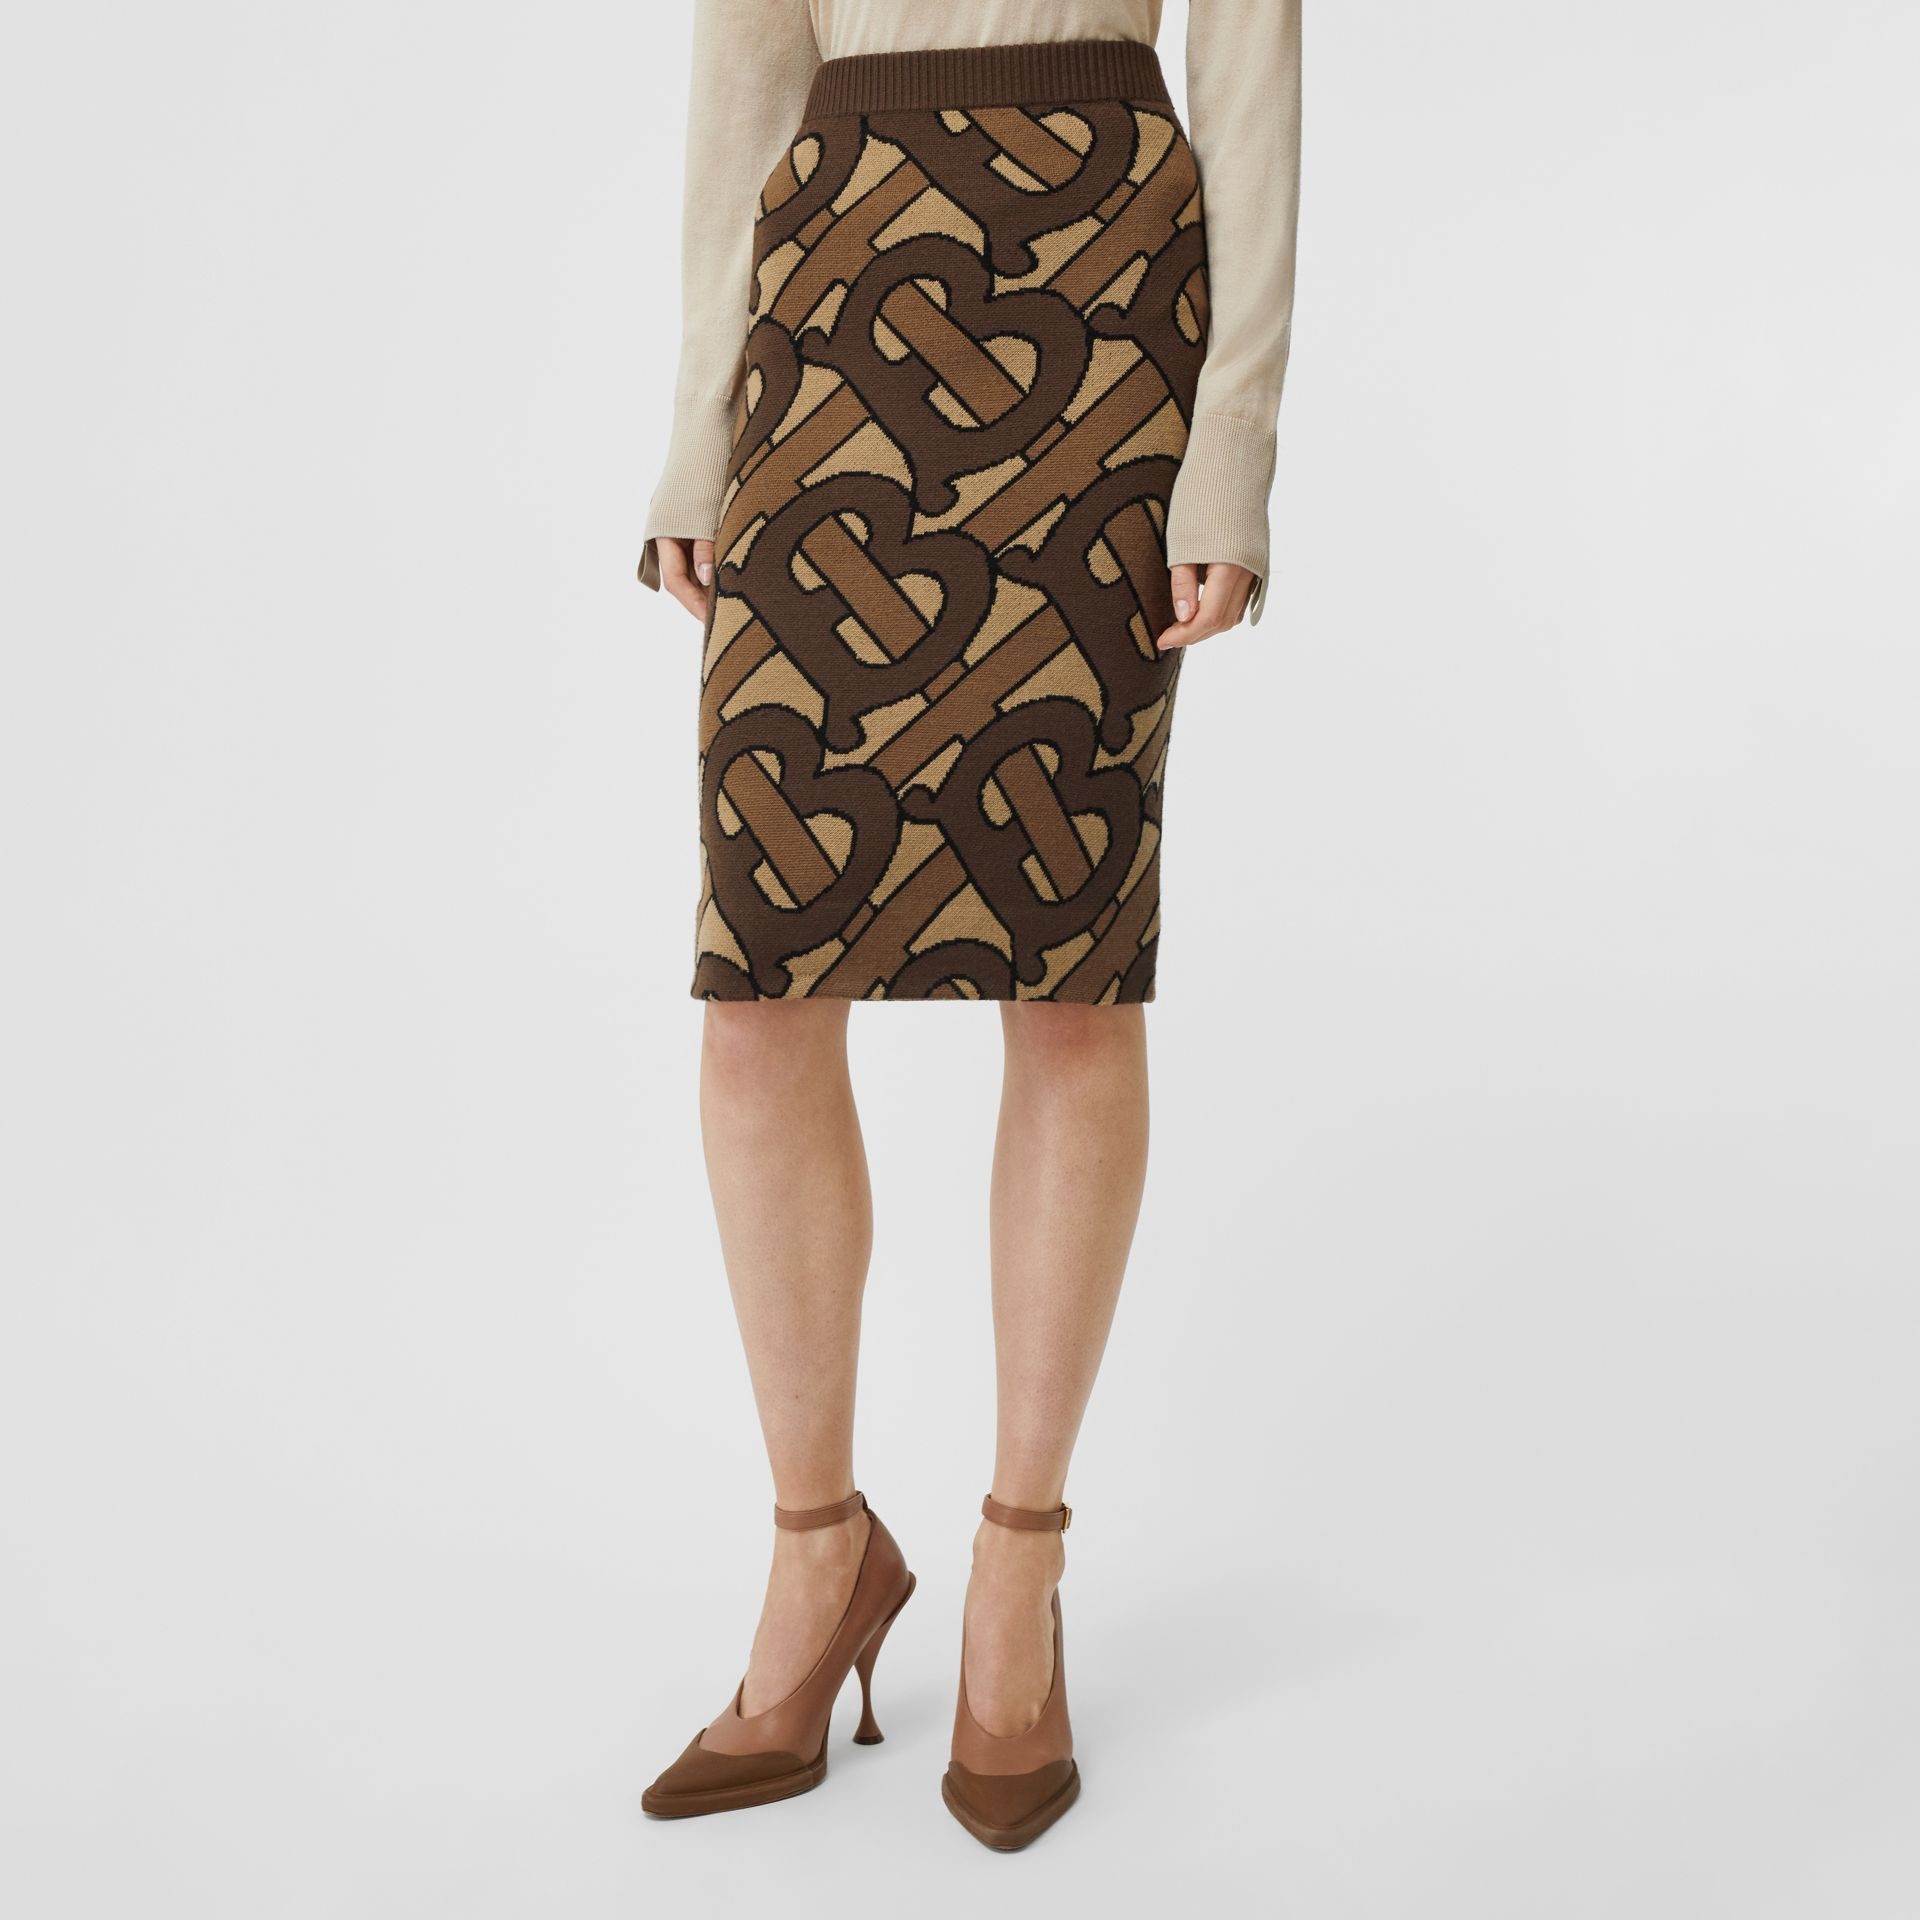 Monogram Intarsia Wool Pencil Skirt in Bridle Brown - Women | Burberry Canada - gallery image 5